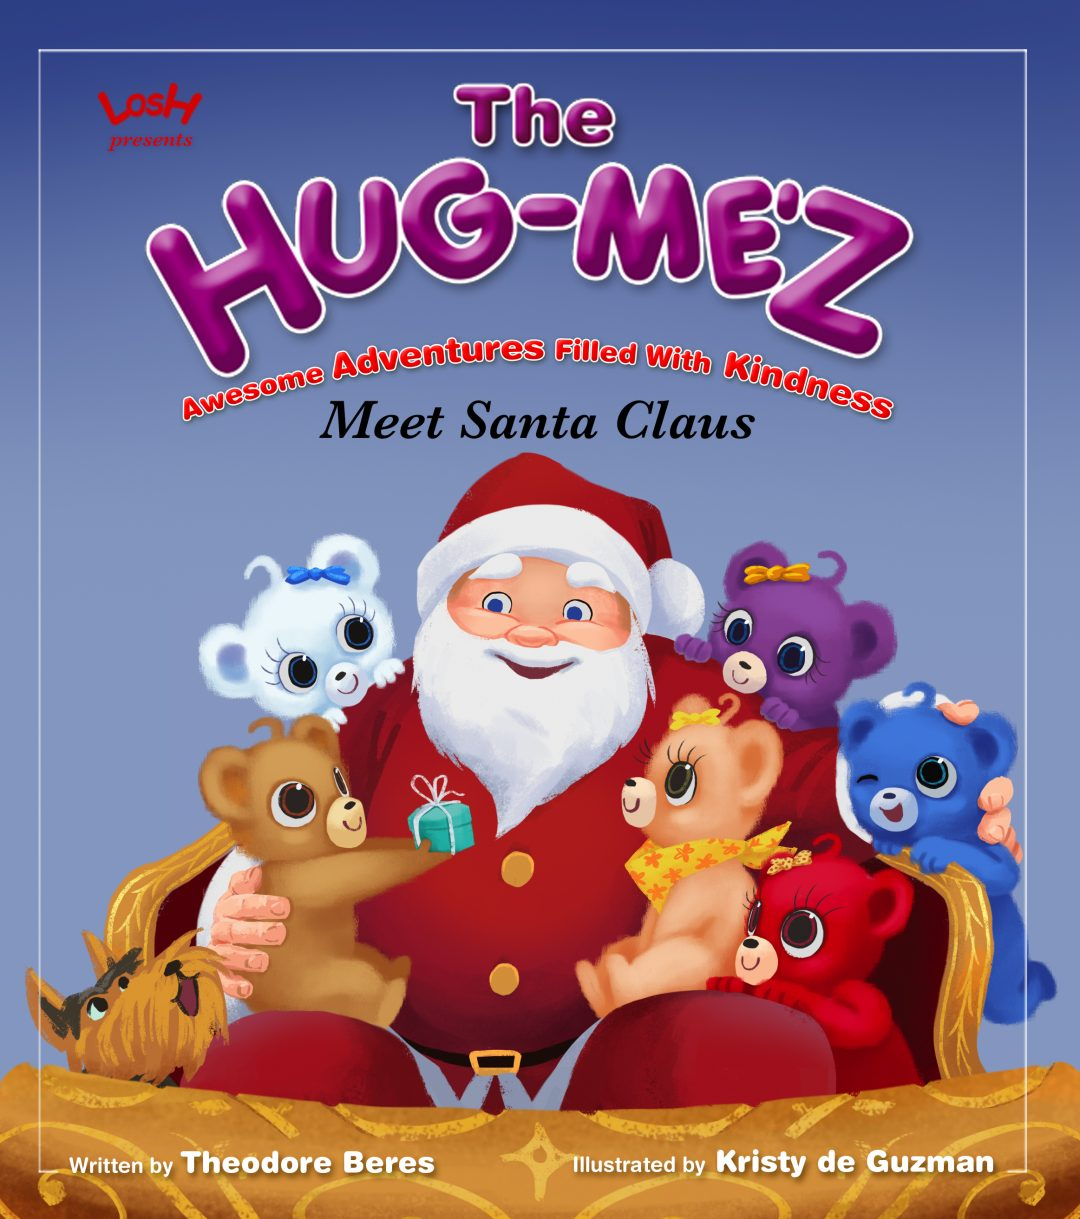 The Hug-Me'z Meet Santa Claus Book Cover